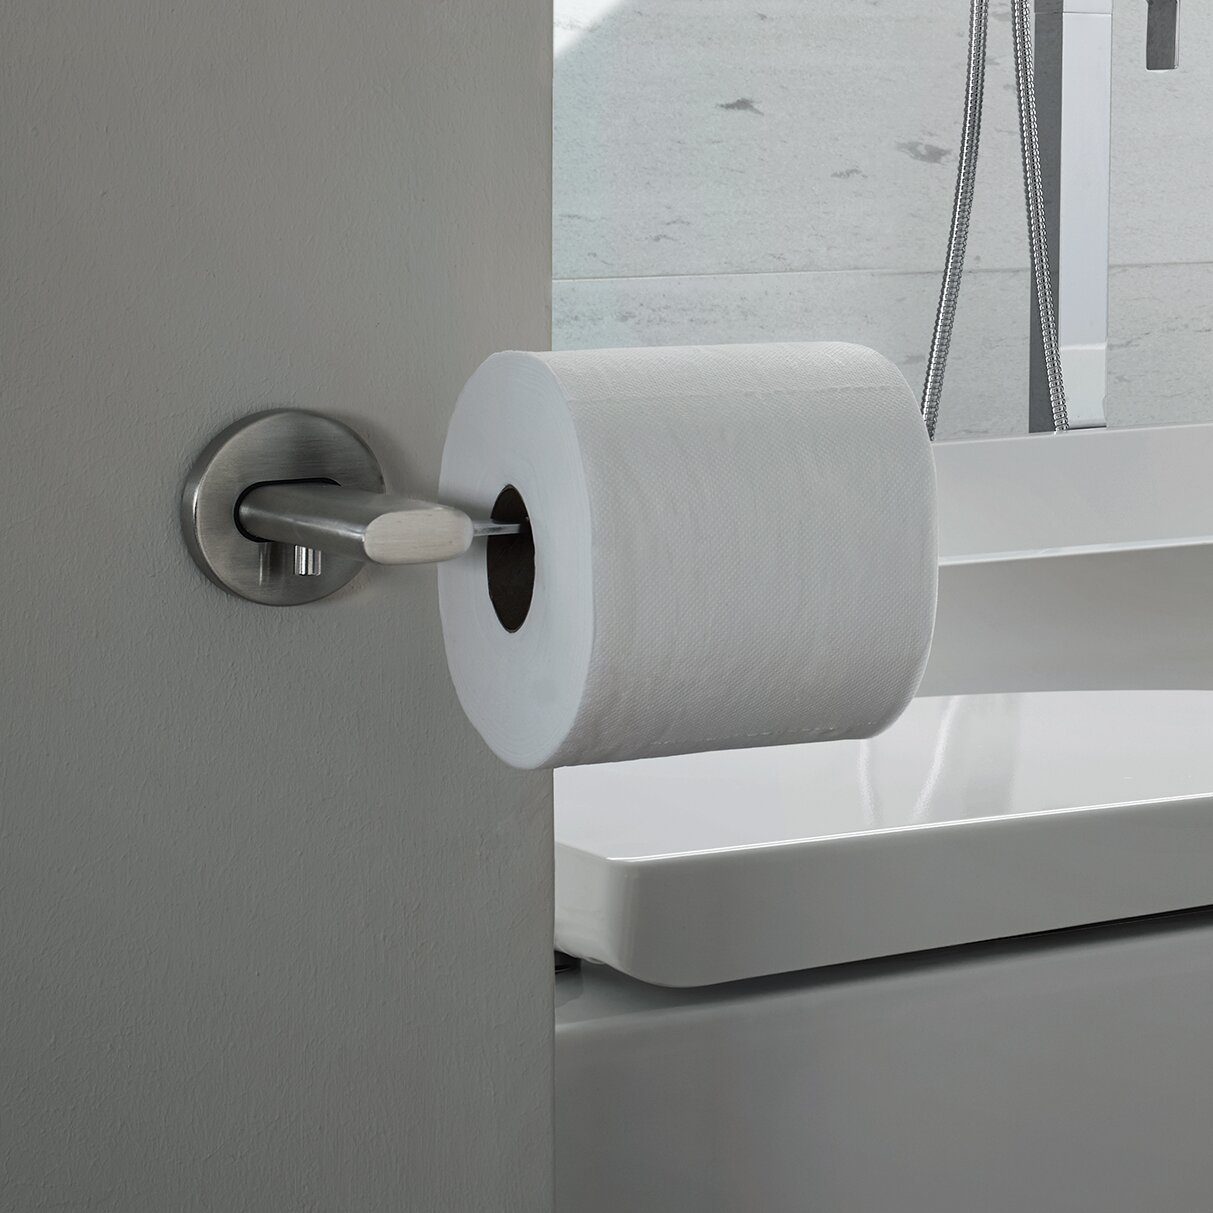 Bathroom Paper Towel Dispensers. unlacquered brass paper towel ... - Blomus Areo Toilet Paper Holder